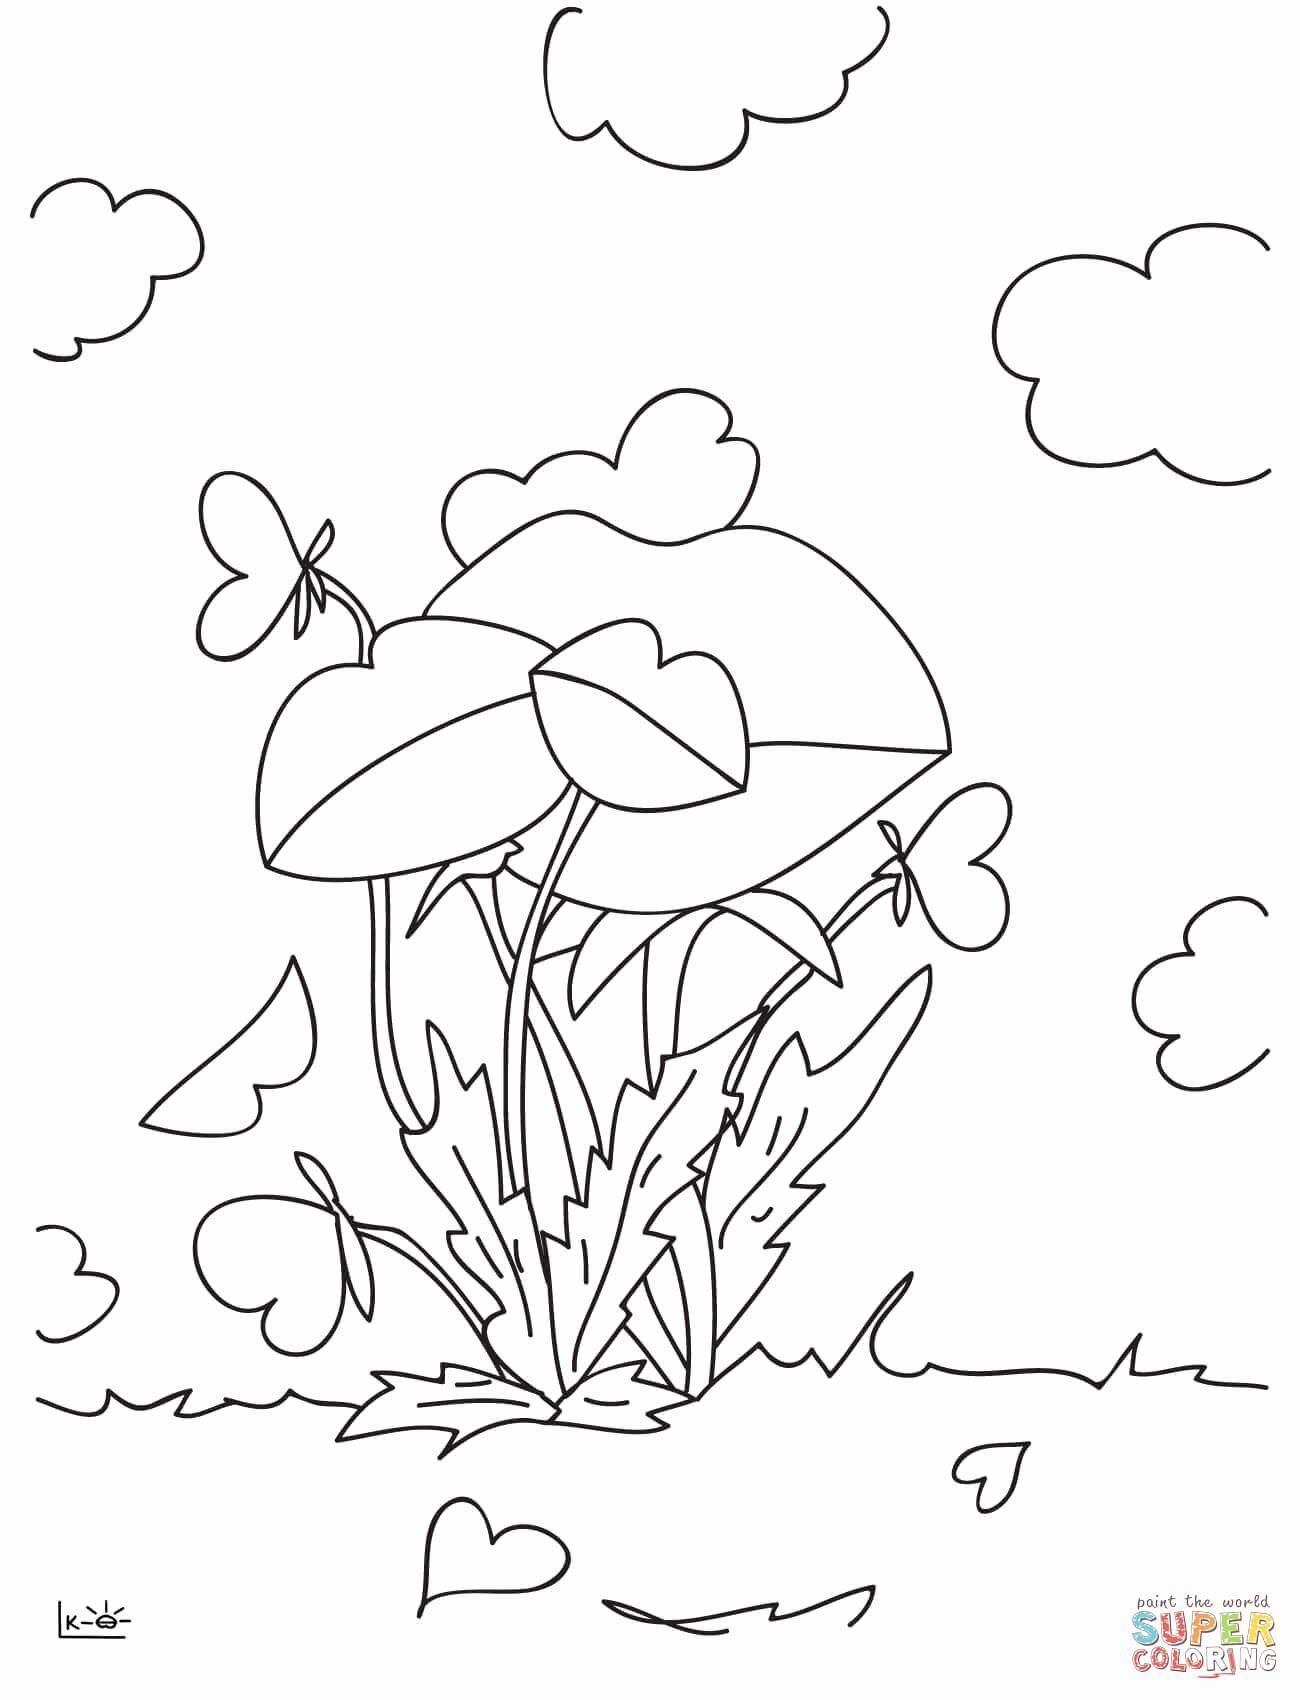 Spring Flowers Coloring Pictures Fresh Coloring Pages Lips Like Flowers Coloring In 2020 Coloring Pages Free Printable Coloring Pages Rose Coloring Pages